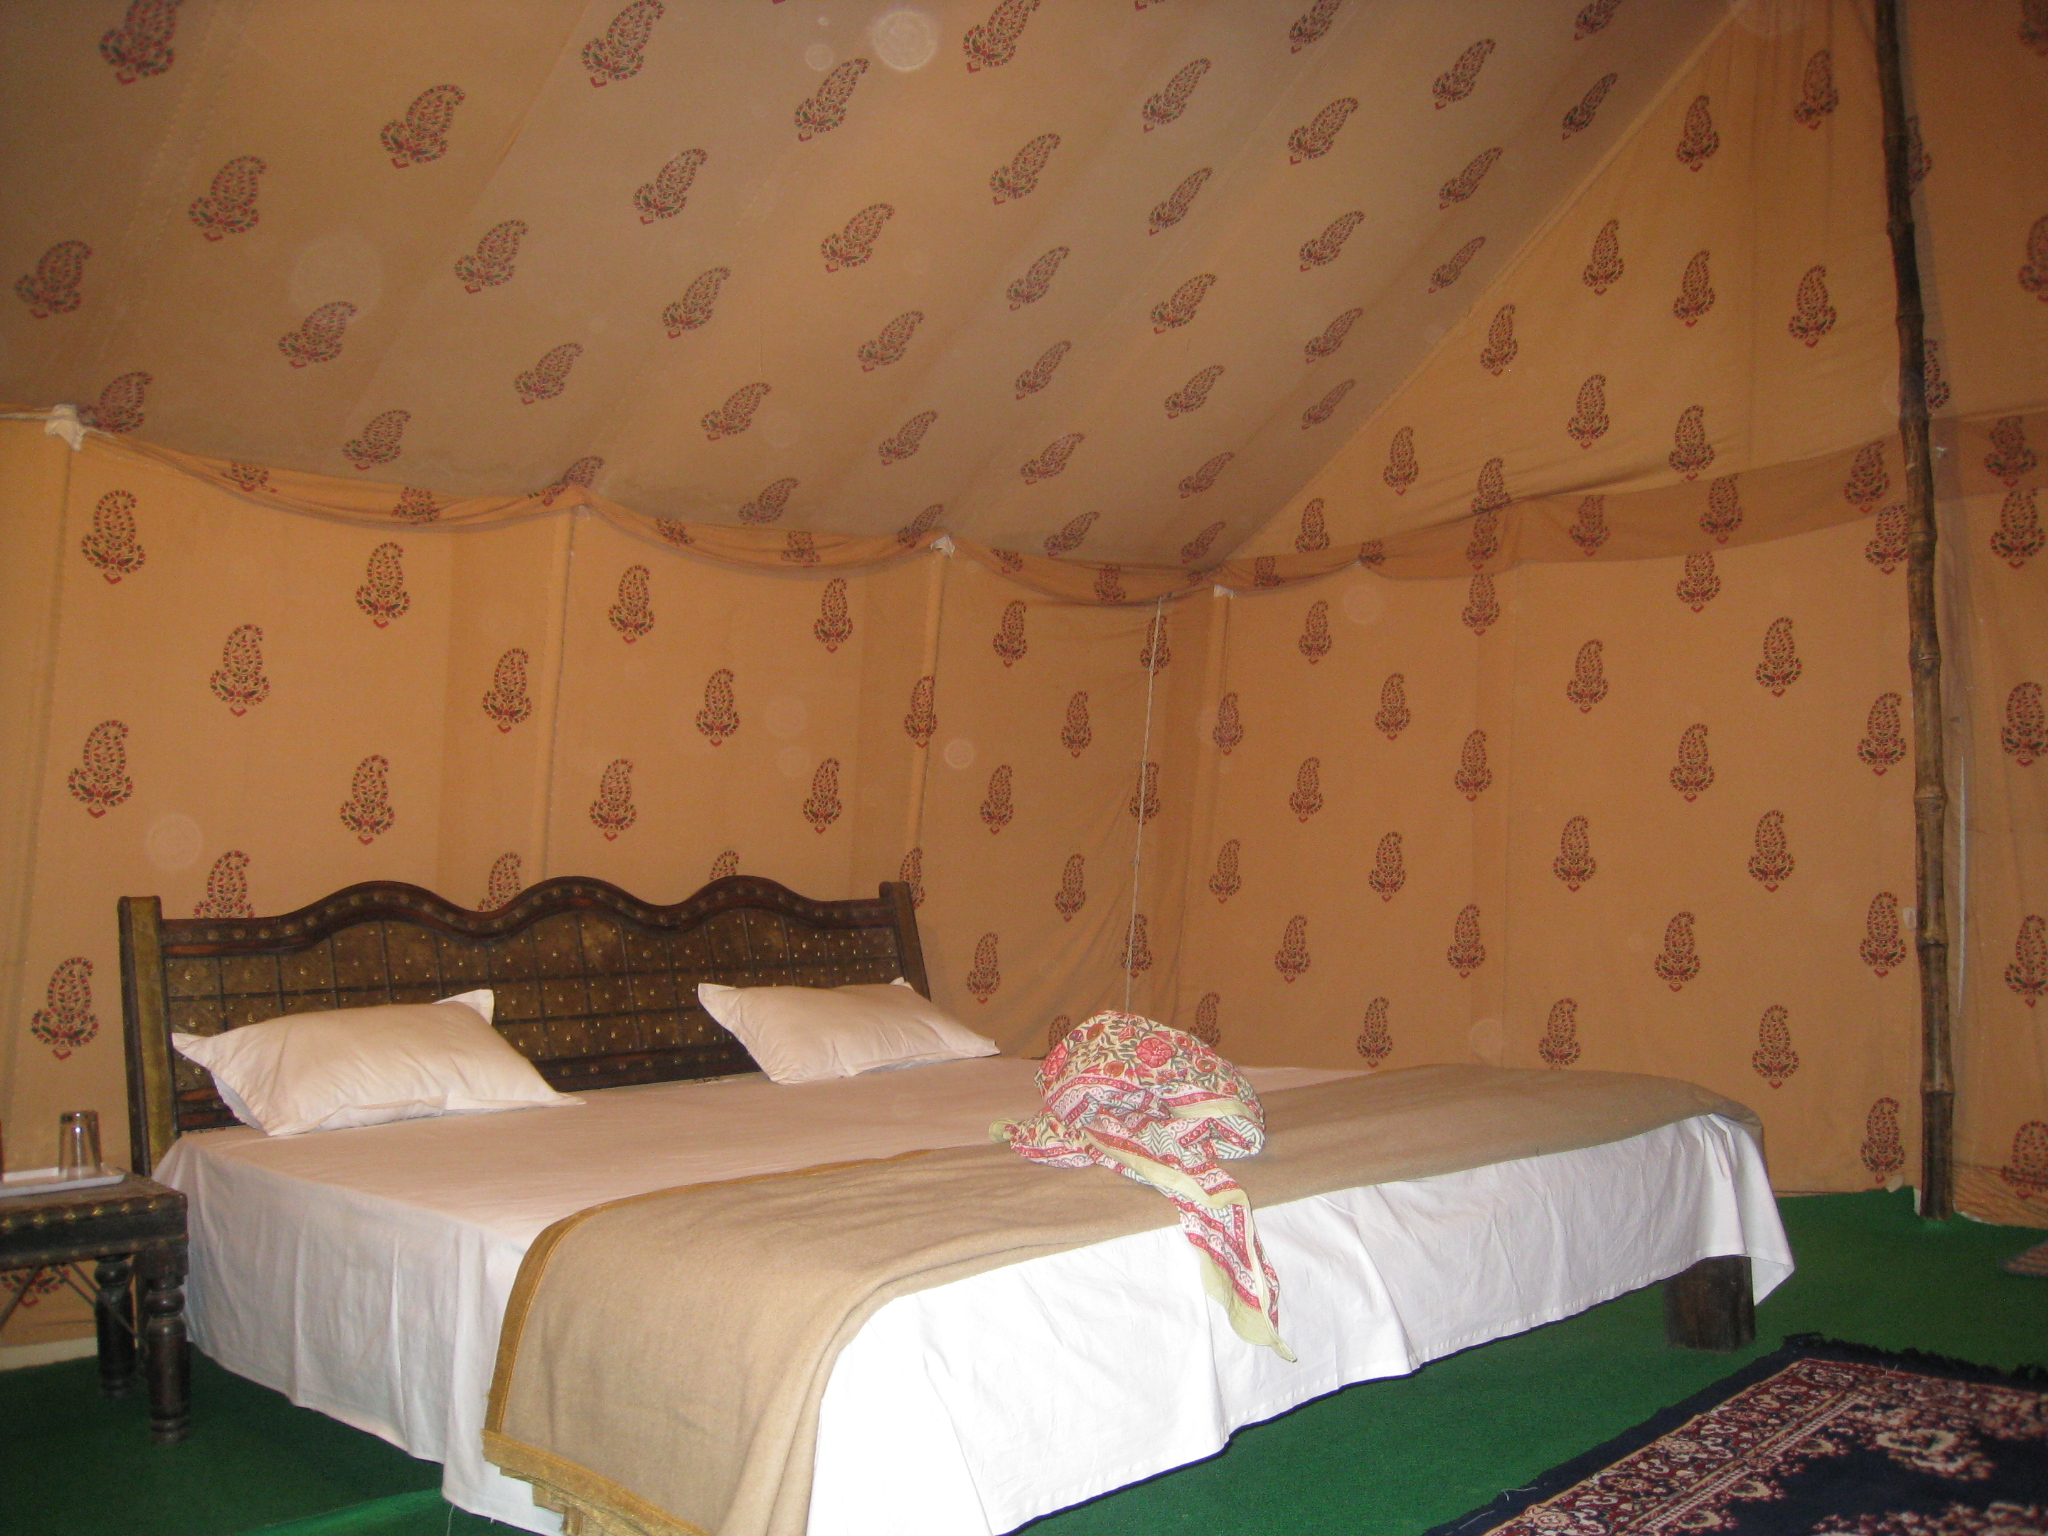 Swiss tent safari package,                                     SHAHI PALACE HOTEL JAISALMER - Budget Hotels in Jaisalmer